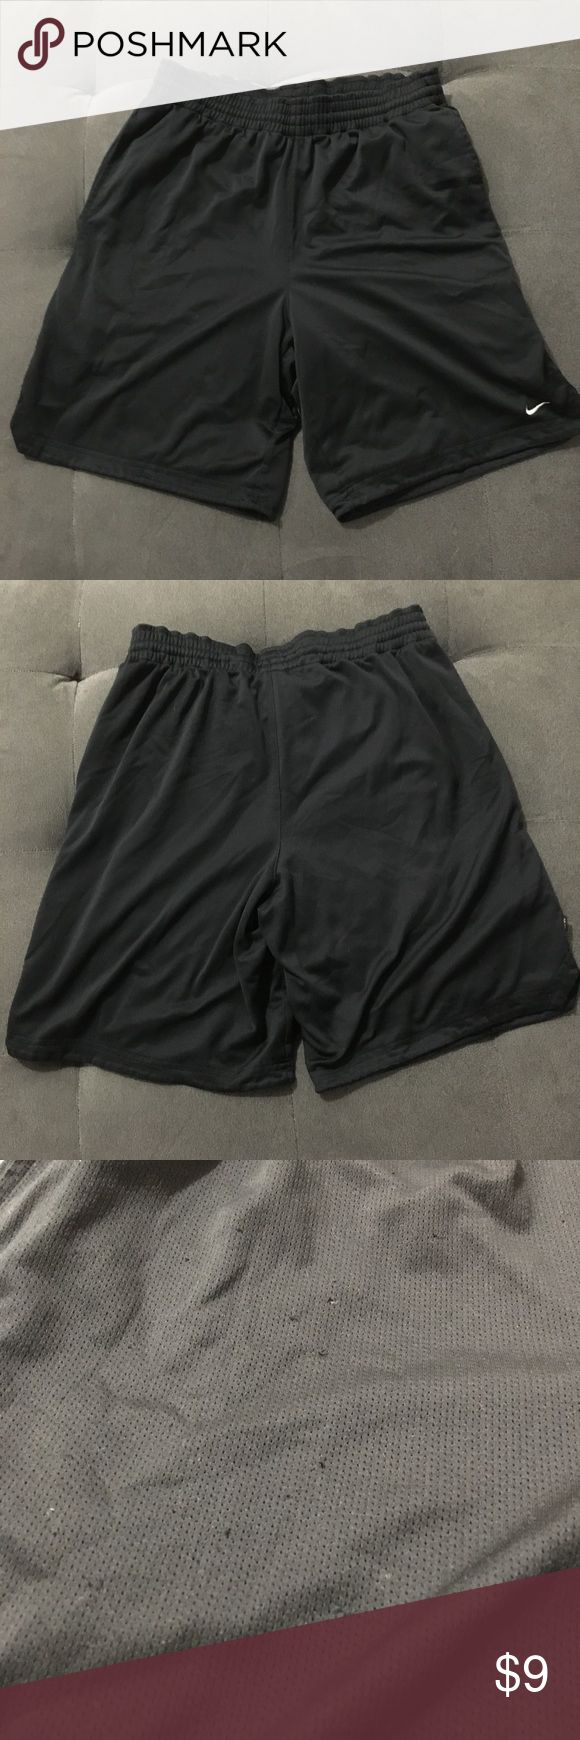 Nike dri-fit men's shorts Nike dri-fit men's shorts  Size M  Good pre-loved condition. See pic of snags  Bundle fav items for personal discount. Offers are always welcome, too! No trades. Thank you! (4) Nike Shorts Athletic